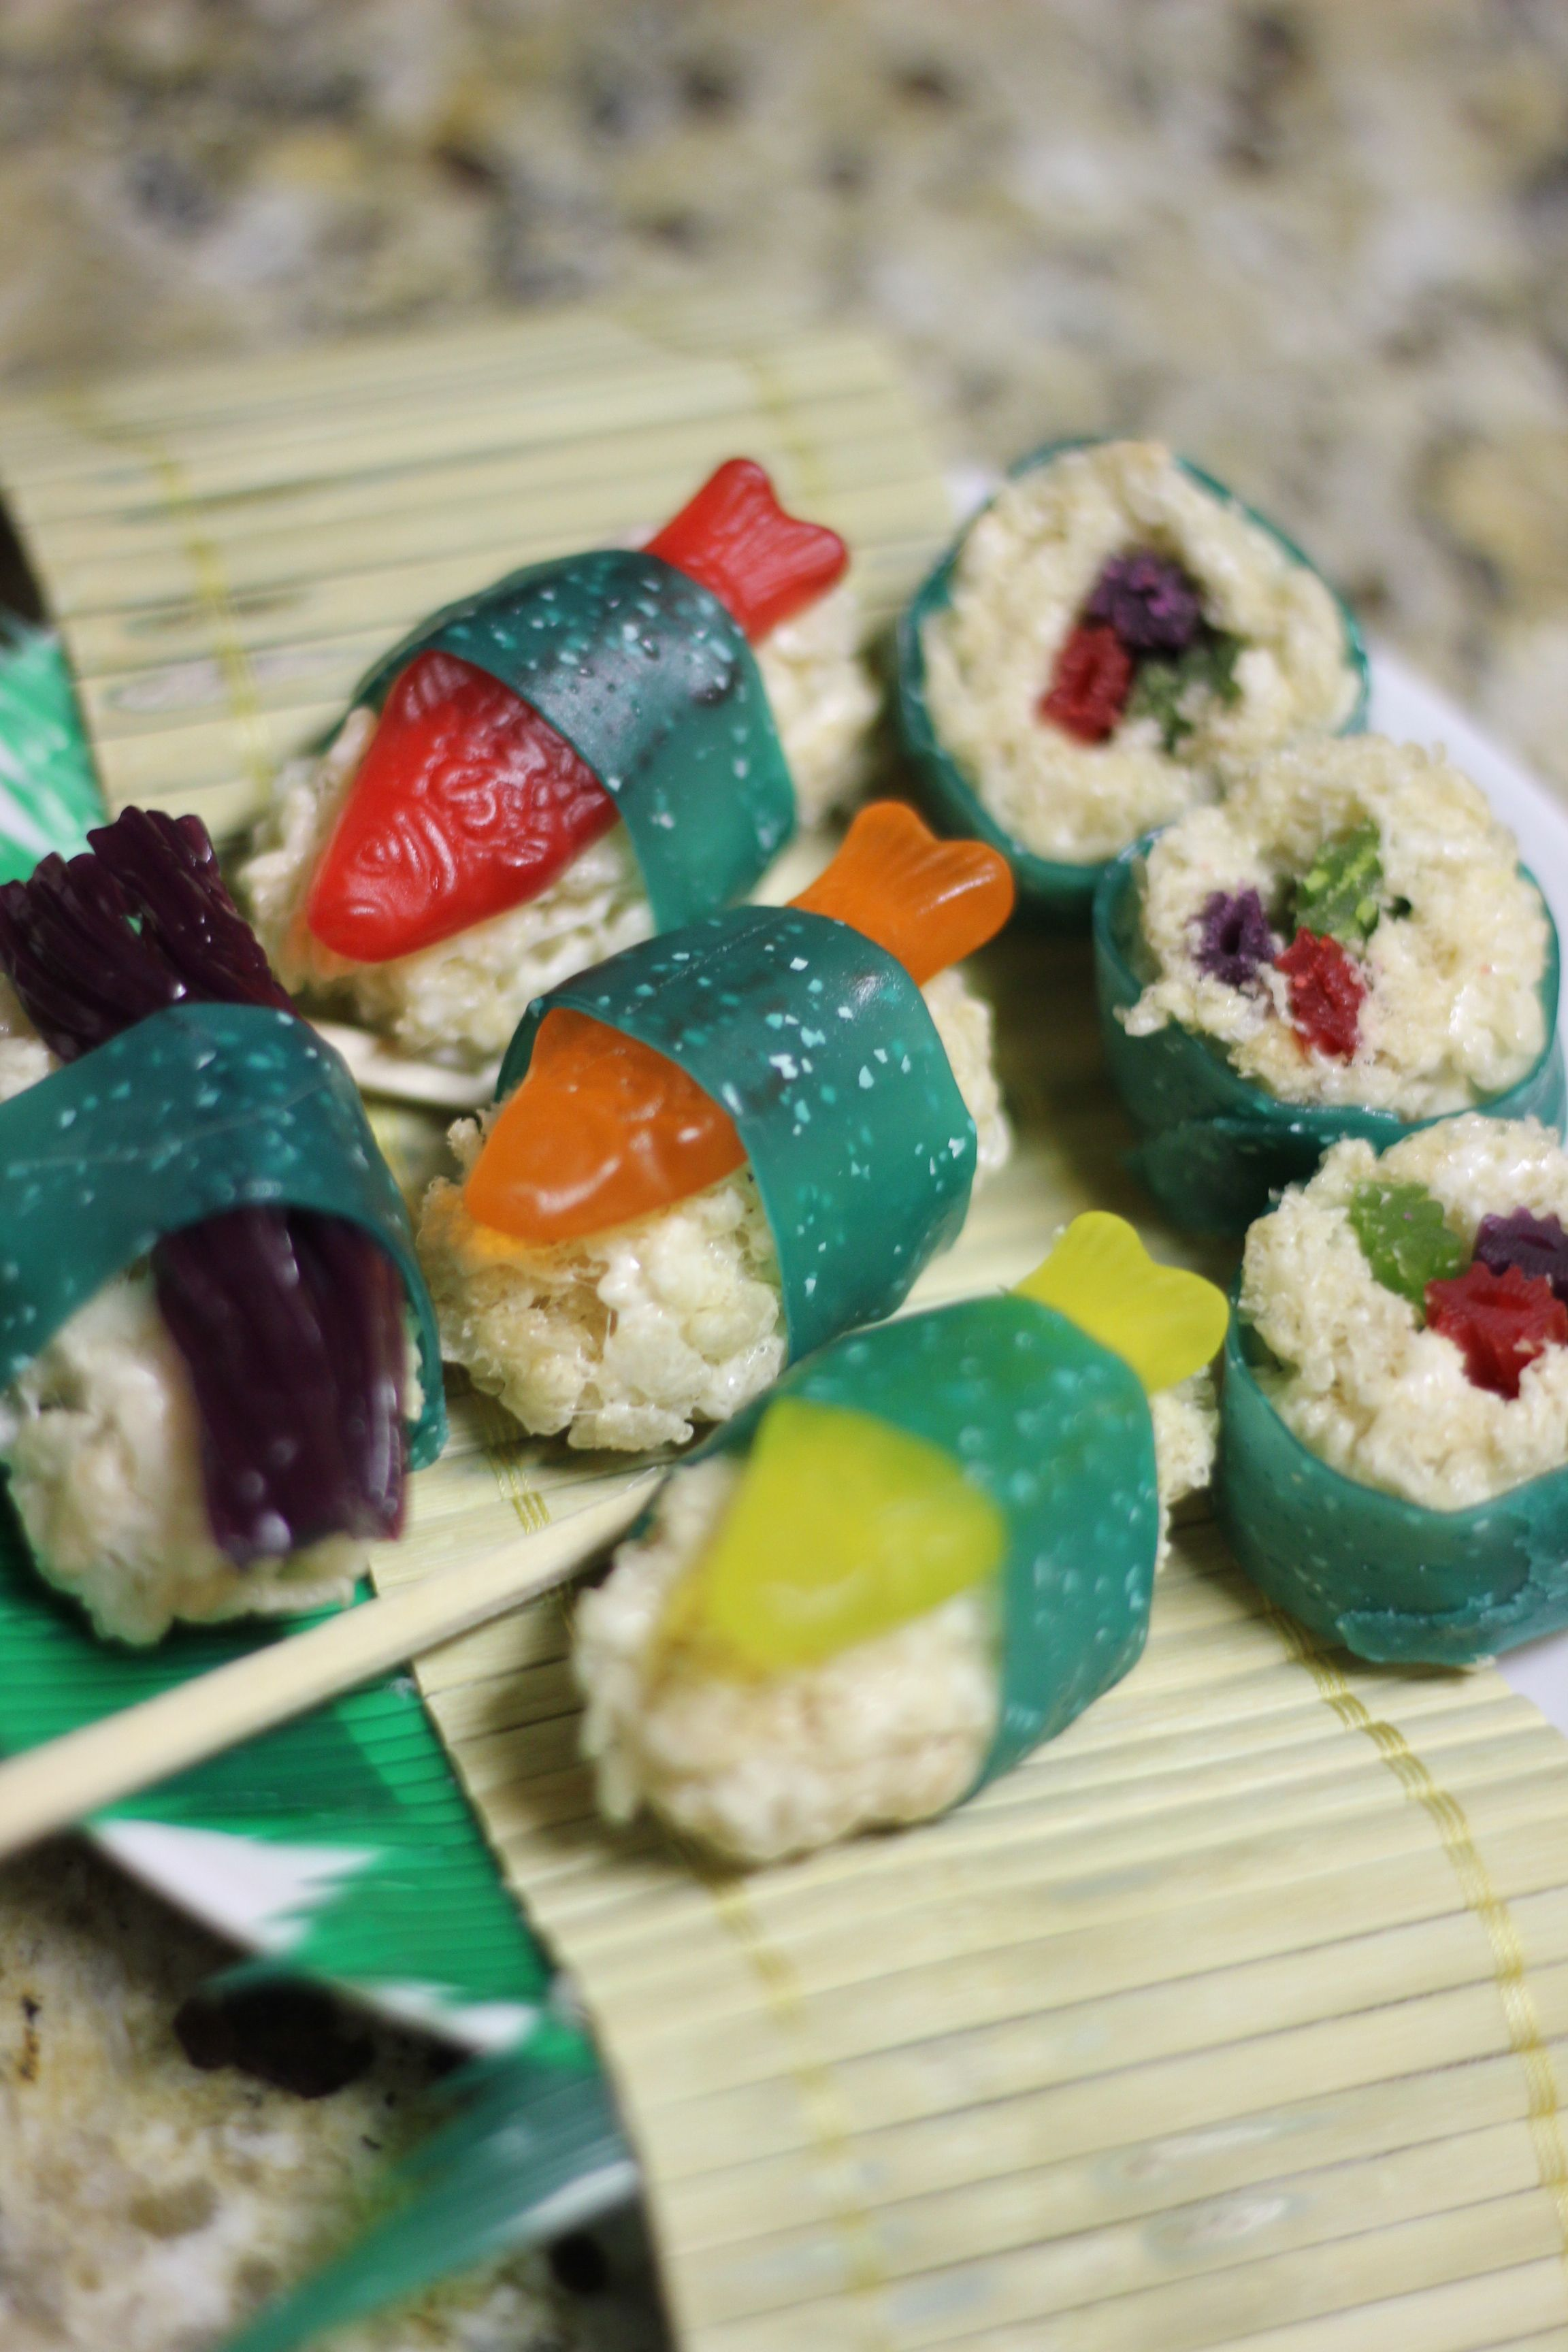 Candy Sushi! Swedish fish, Fruit roll ups, Twizzlers, rice krispie treats. Adorable.   # Pinterest++ for iPad #